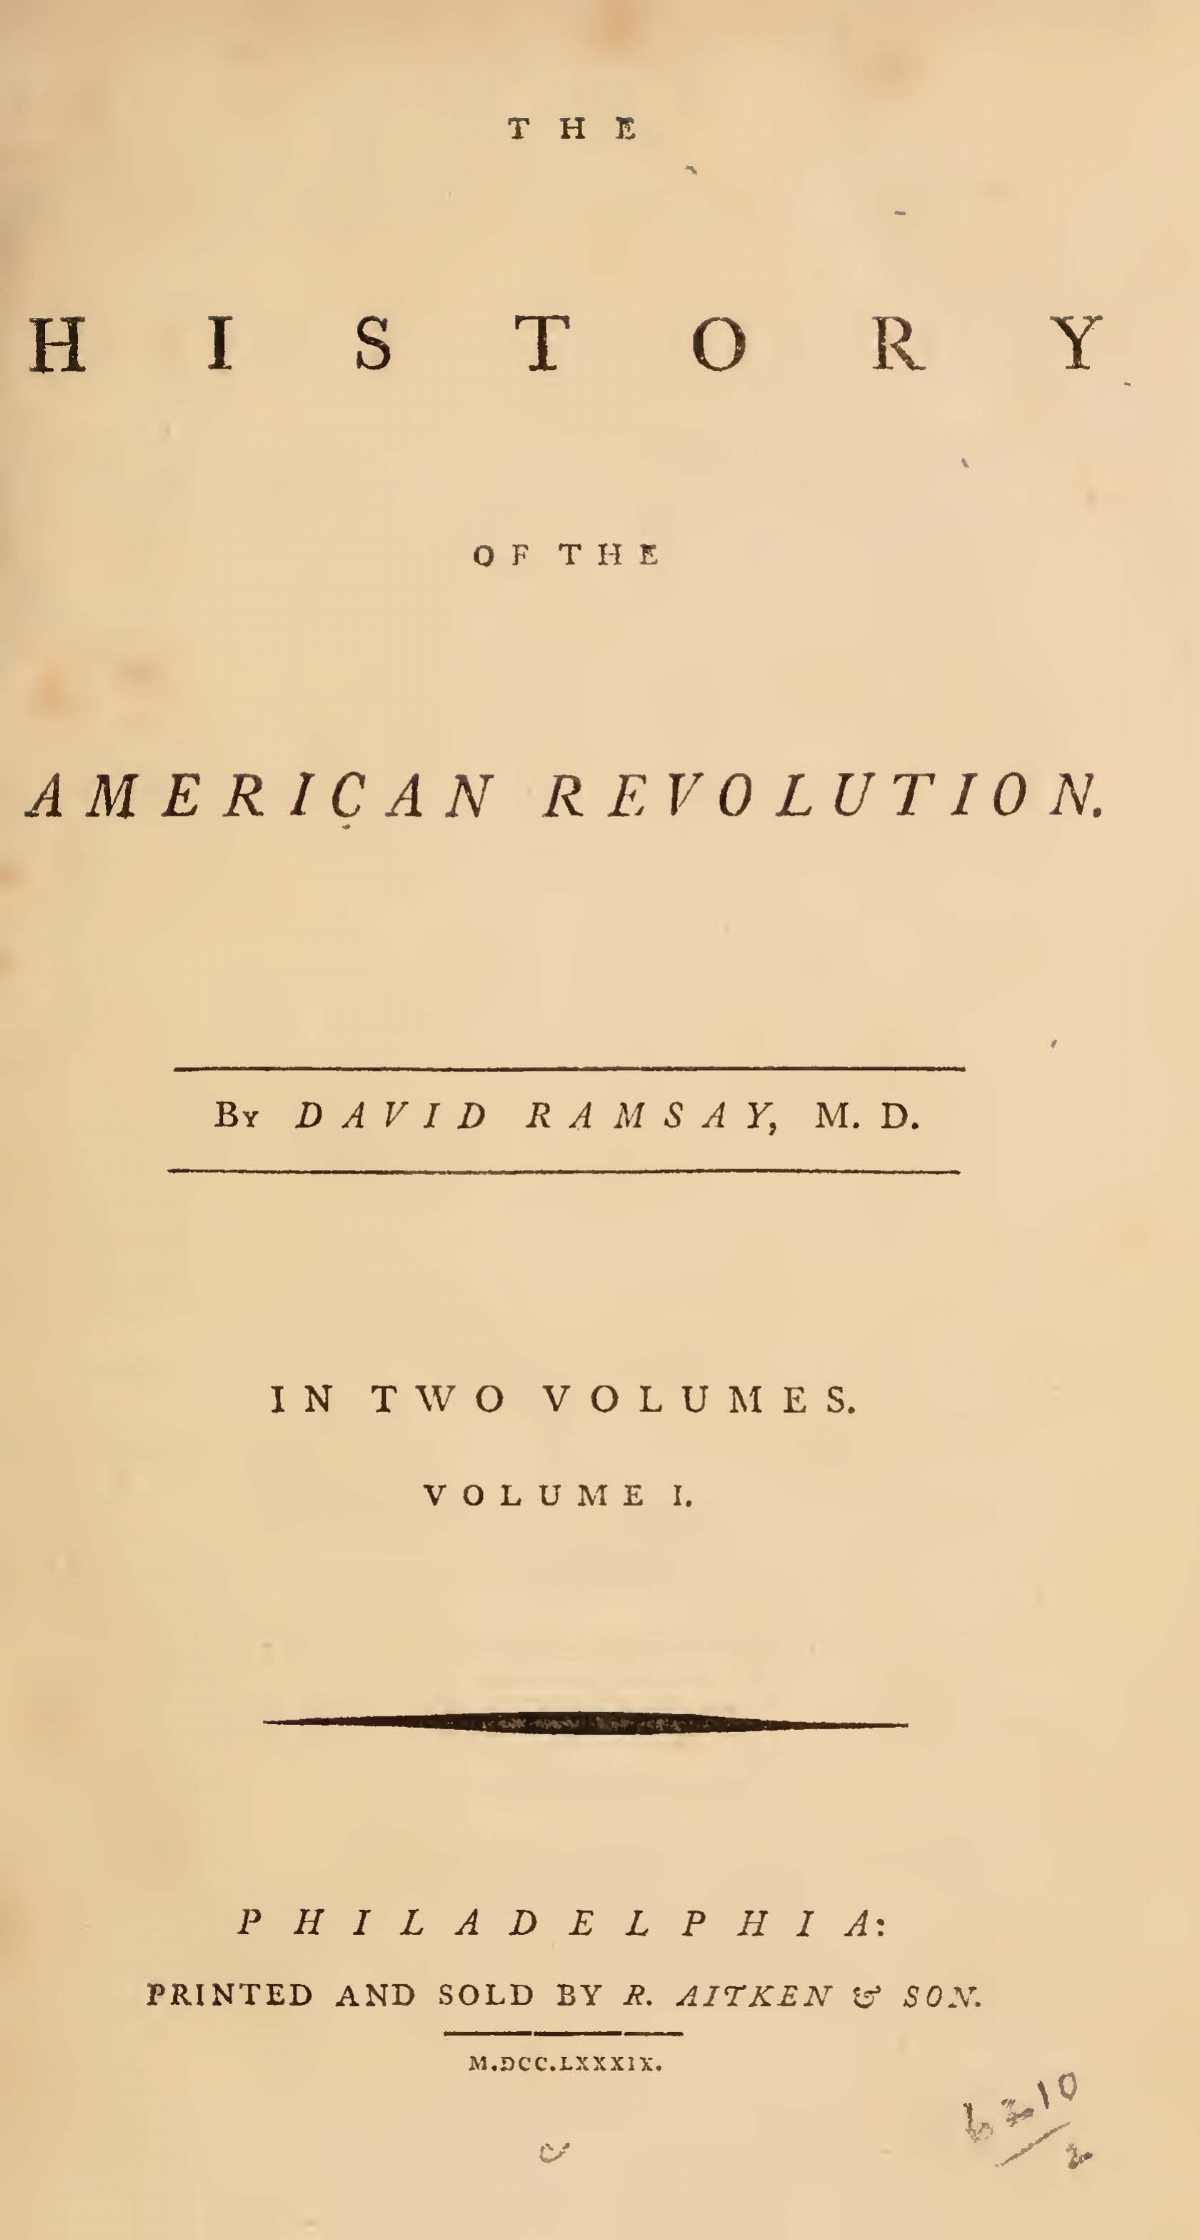 Ramsay, David, The History of the American Revolution, Vol. 1 Title Page.jpg